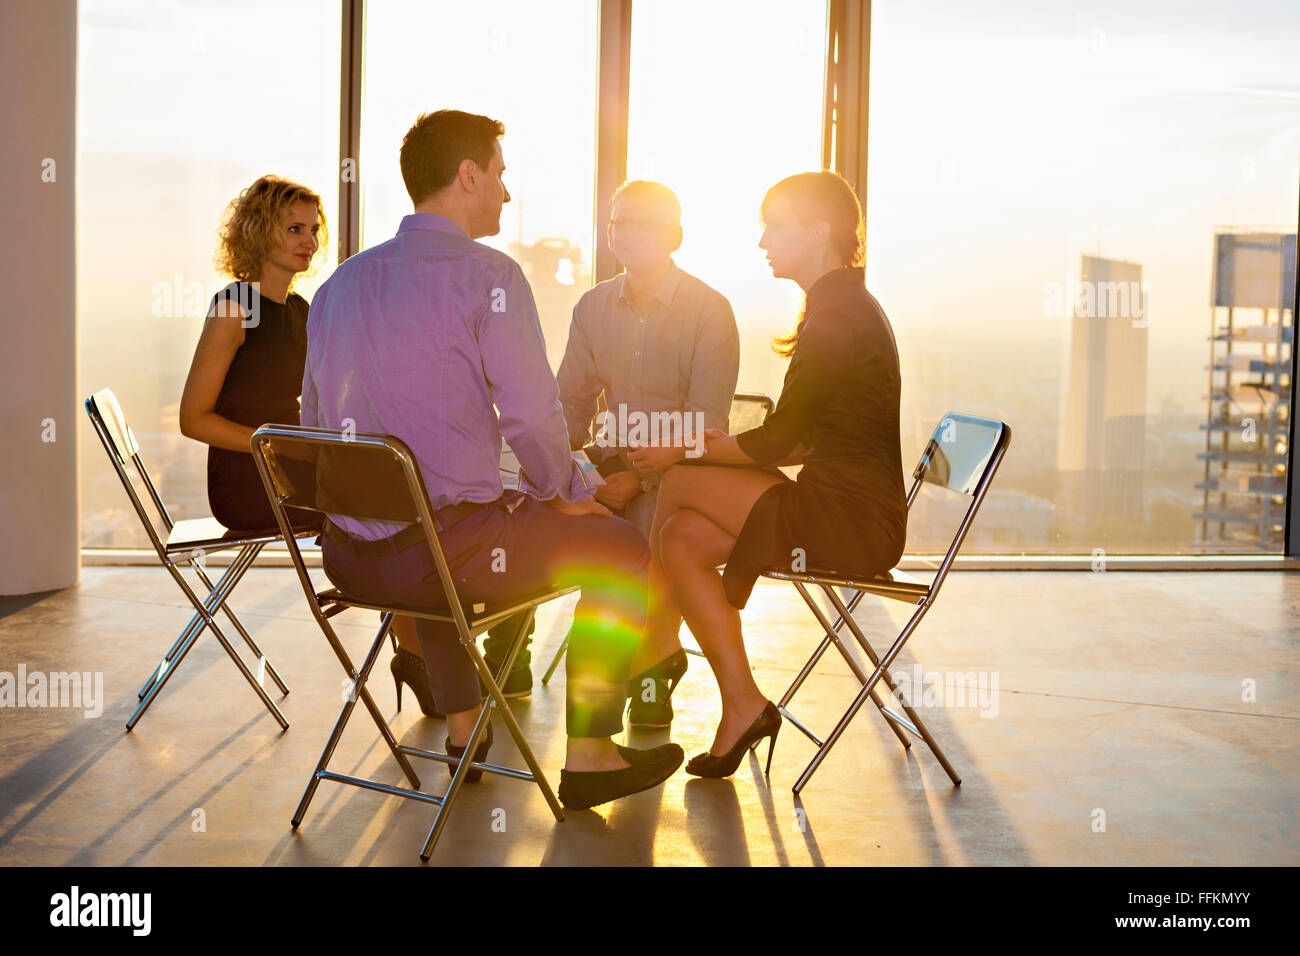 Architects and business people in business meeting - Stock Image